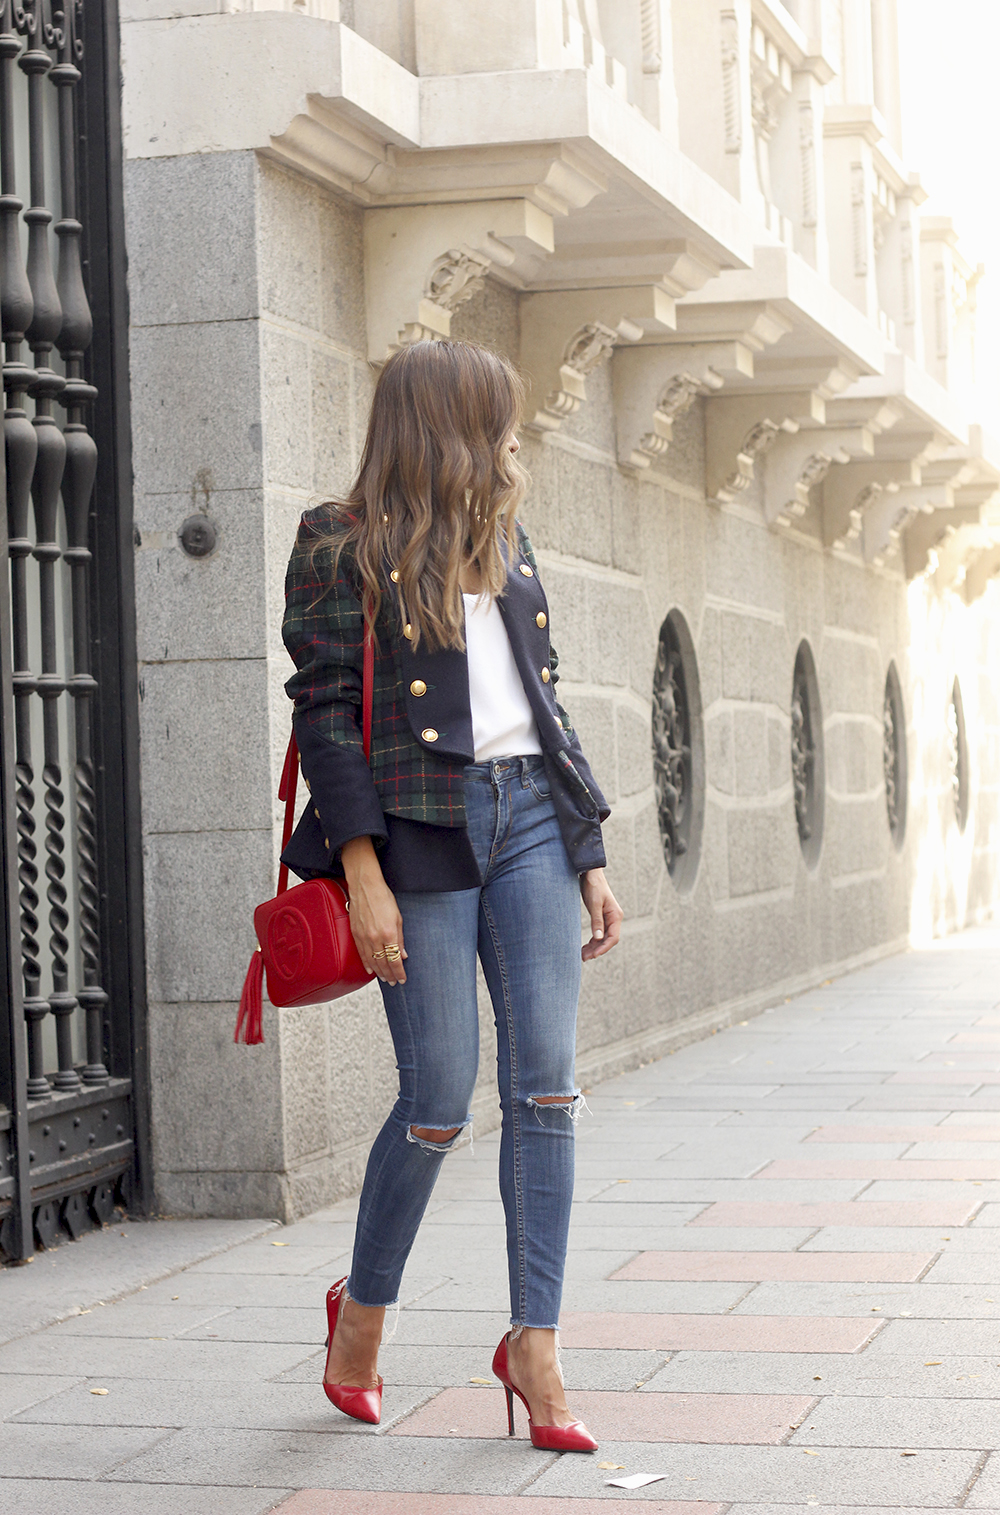 CHECKED BLAZER highly preppy gucci bag ripped jeans street style 2018 outfit01